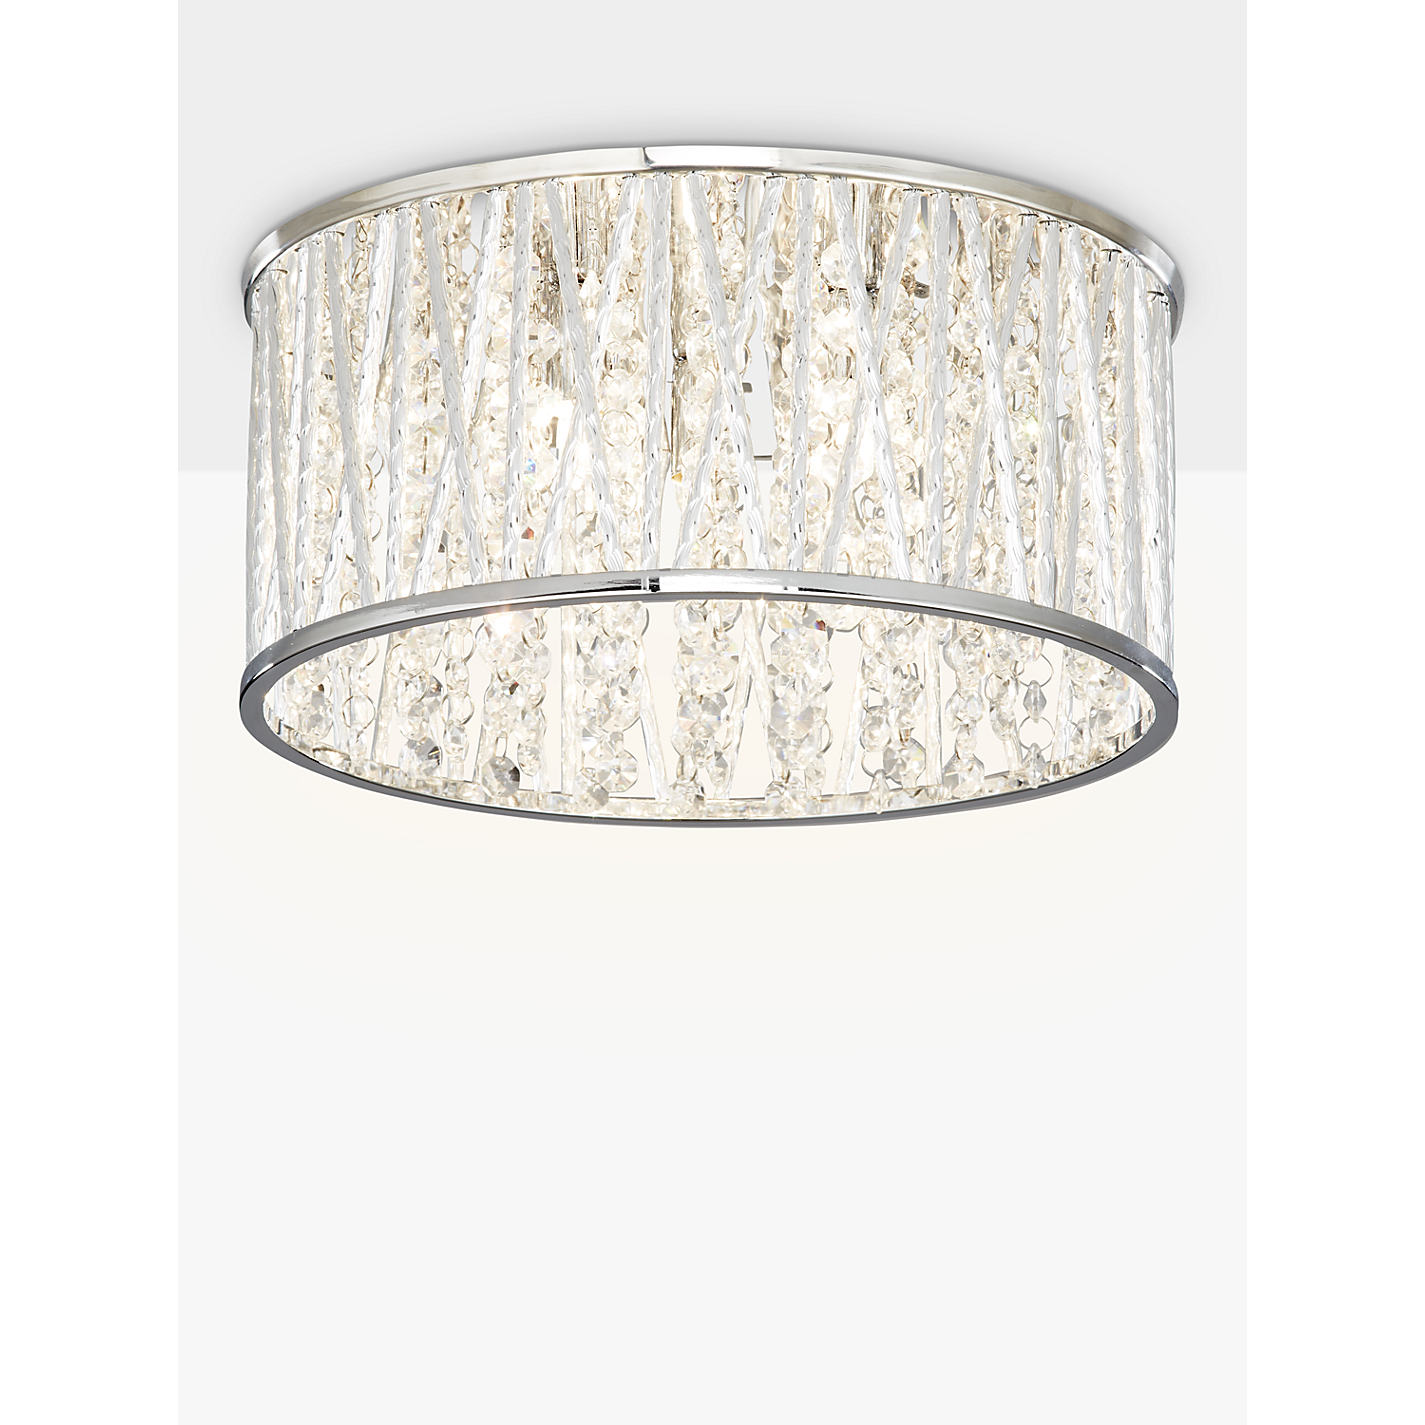 Buy john lewis emilia crystal drum flush ceiling light john lewis buy john lewis emilia crystal drum flush ceiling light online at johnlewis aloadofball Choice Image